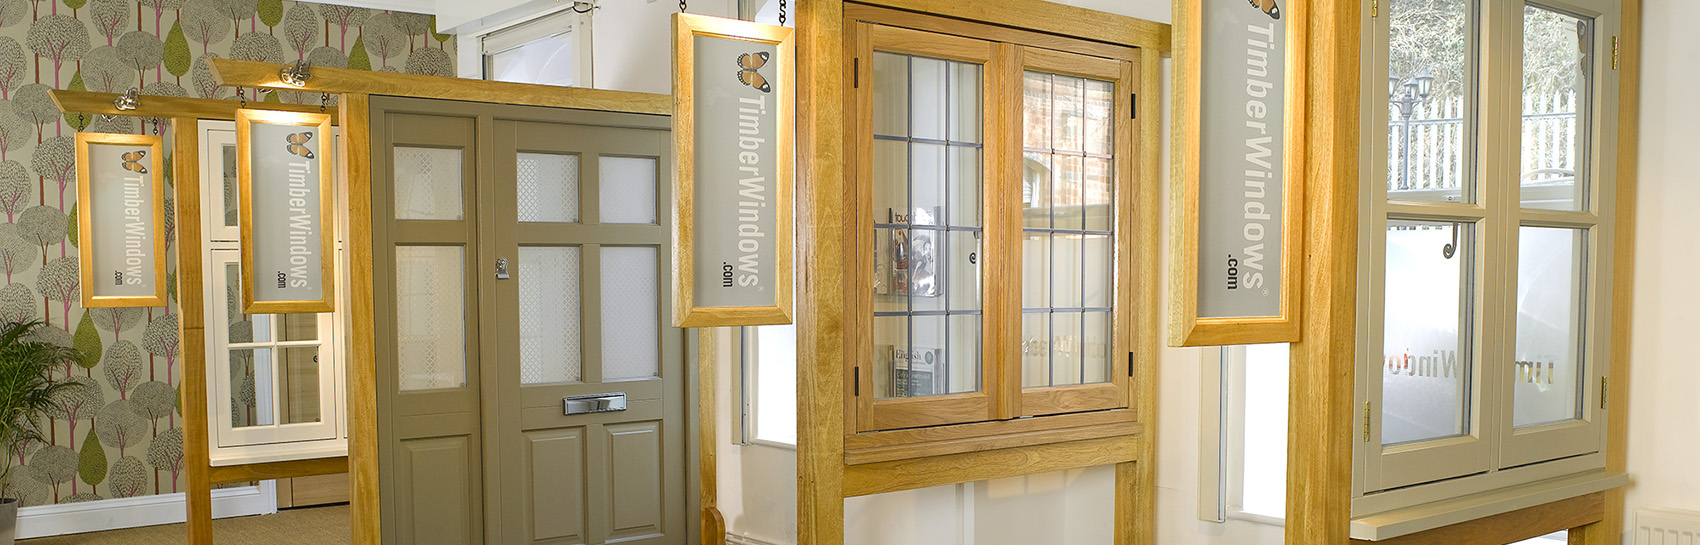 harborne sash windows showroom